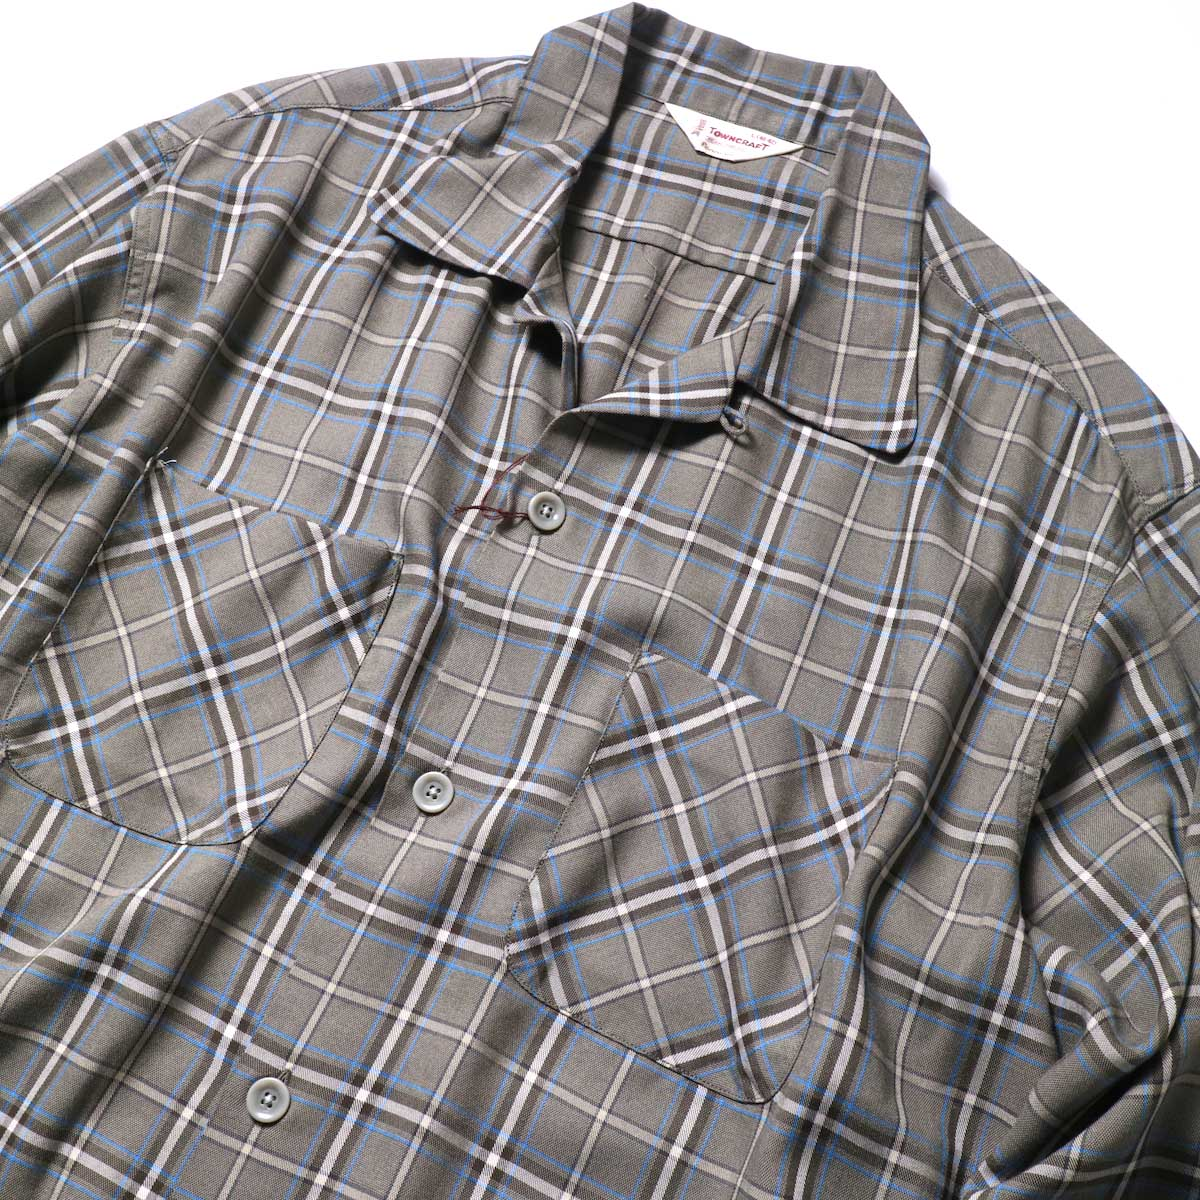 TOWN CRAFT / CLASSIC CHECK OPEN SHIRTS (Gray)オープンカラー